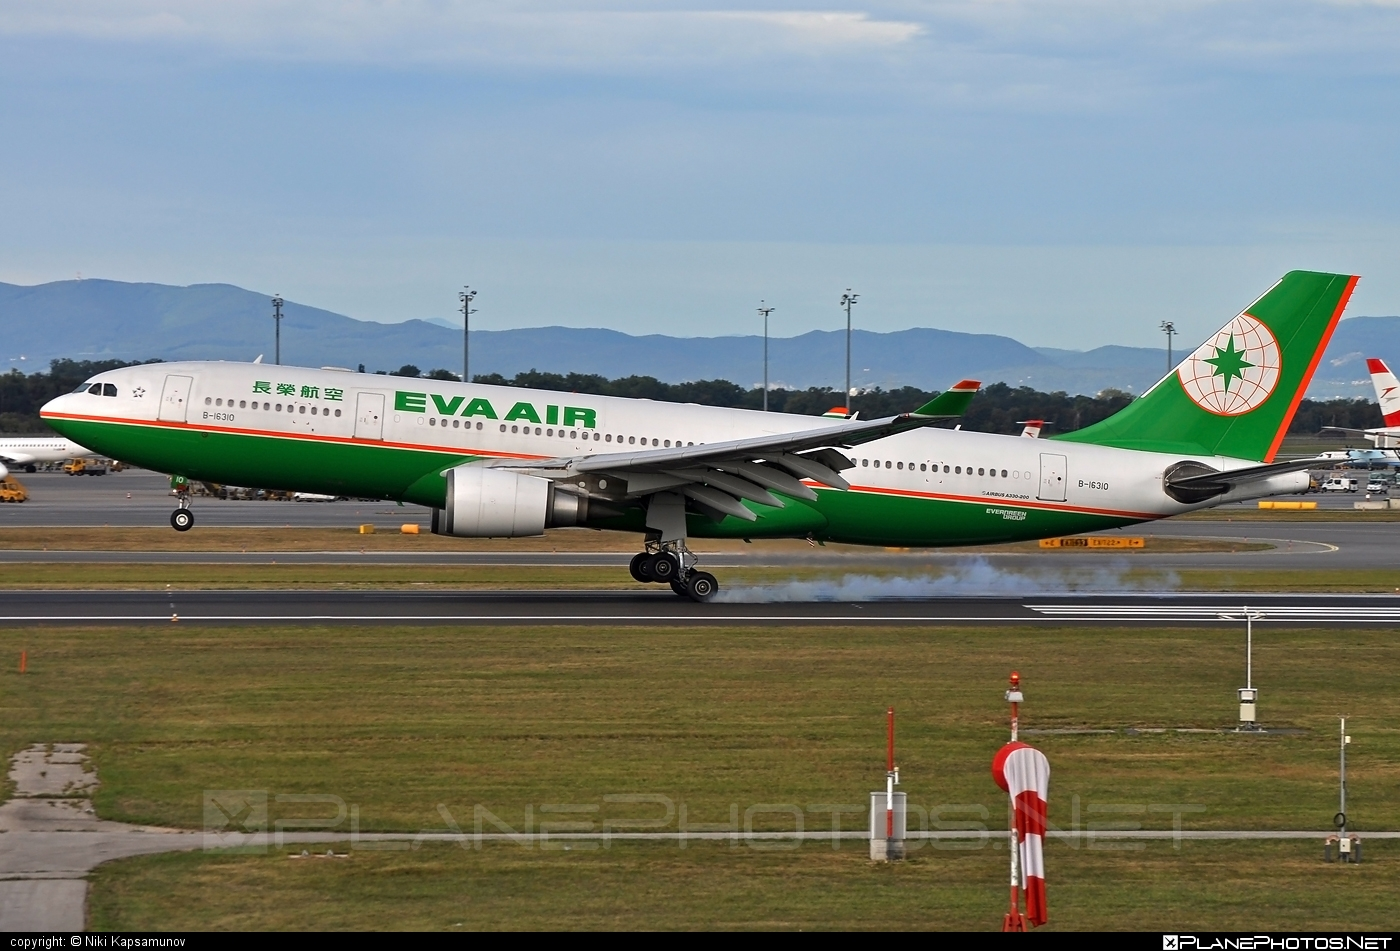 Airbus A330-203 - B-16310 operated by EVA Air #a330 #a330family #airbus #airbus330